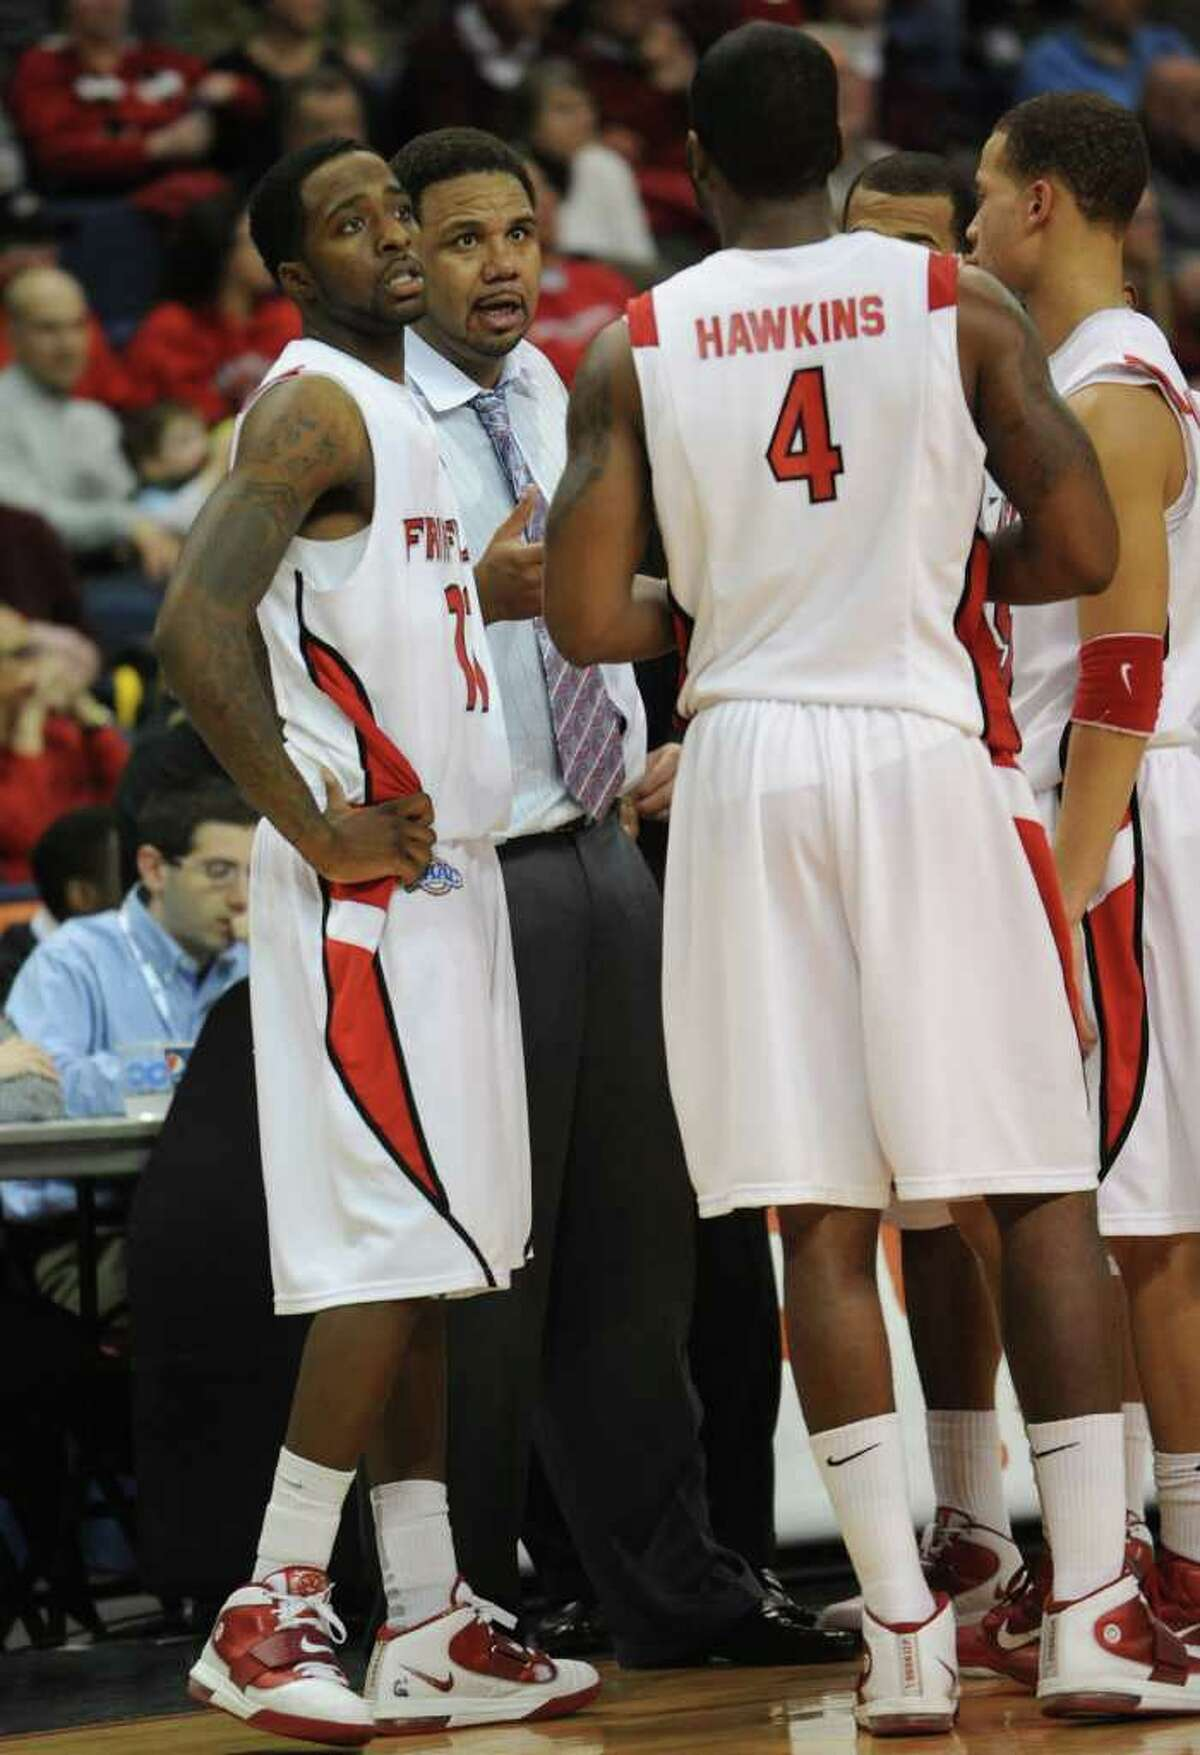 Fairfield vs. St. Peter's in the MAAC men's basketball semifinals at the Webster Bank Arena at Harbor Yard in Bridgeport on Sunday, March 6, 2011.